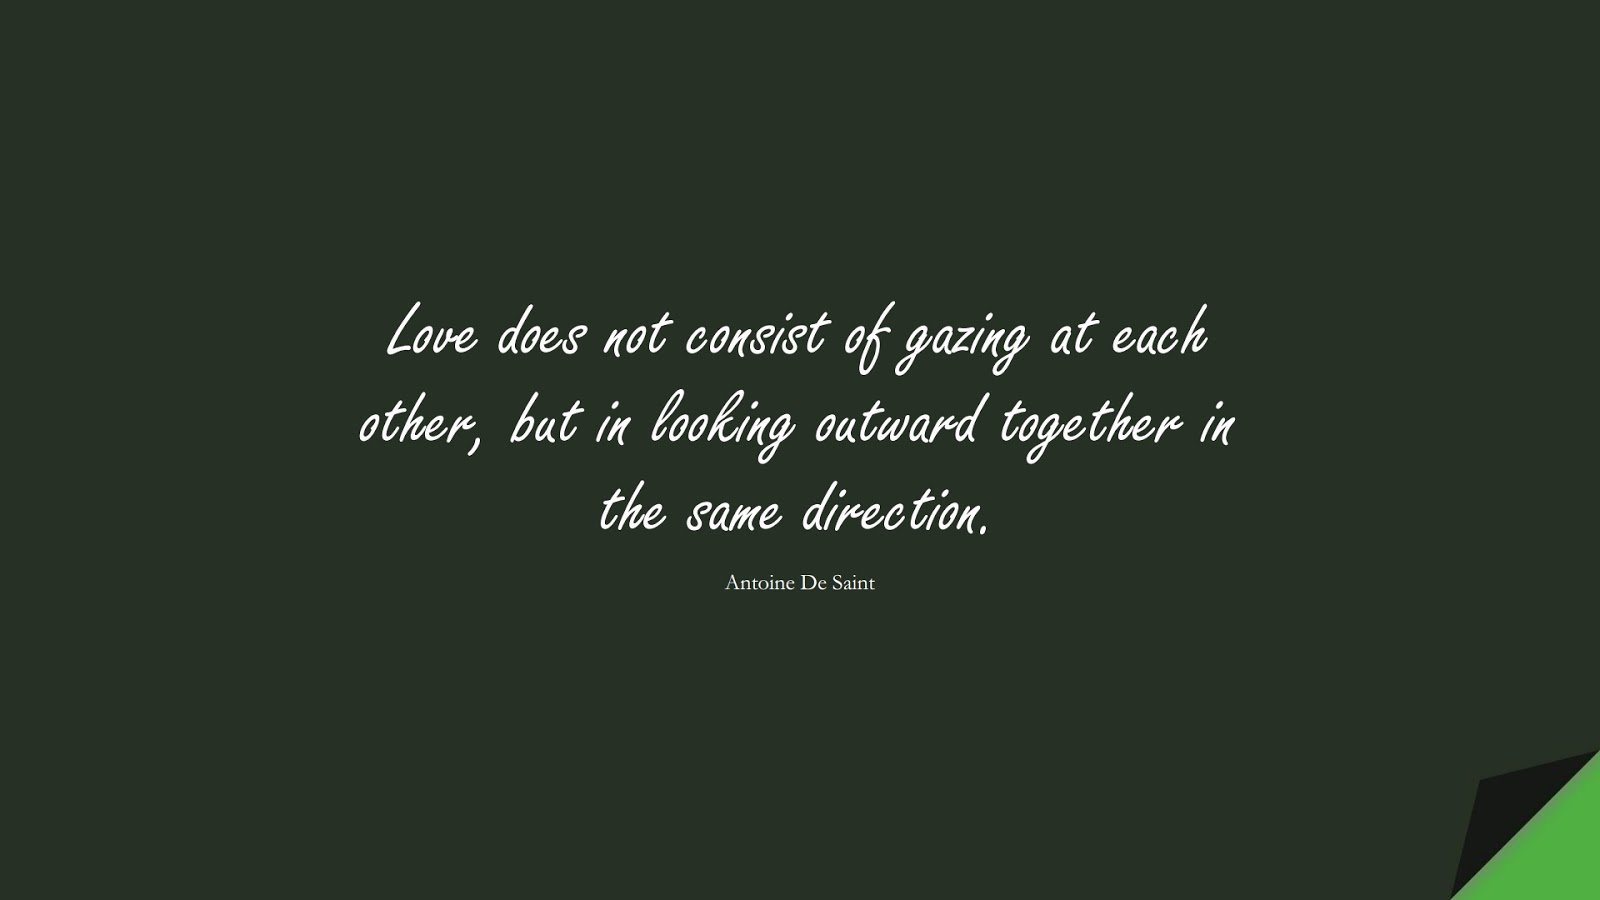 Love does not consist of gazing at each other, but in looking outward together in the same direction. (Antoine De Saint);  #LoveQuotes